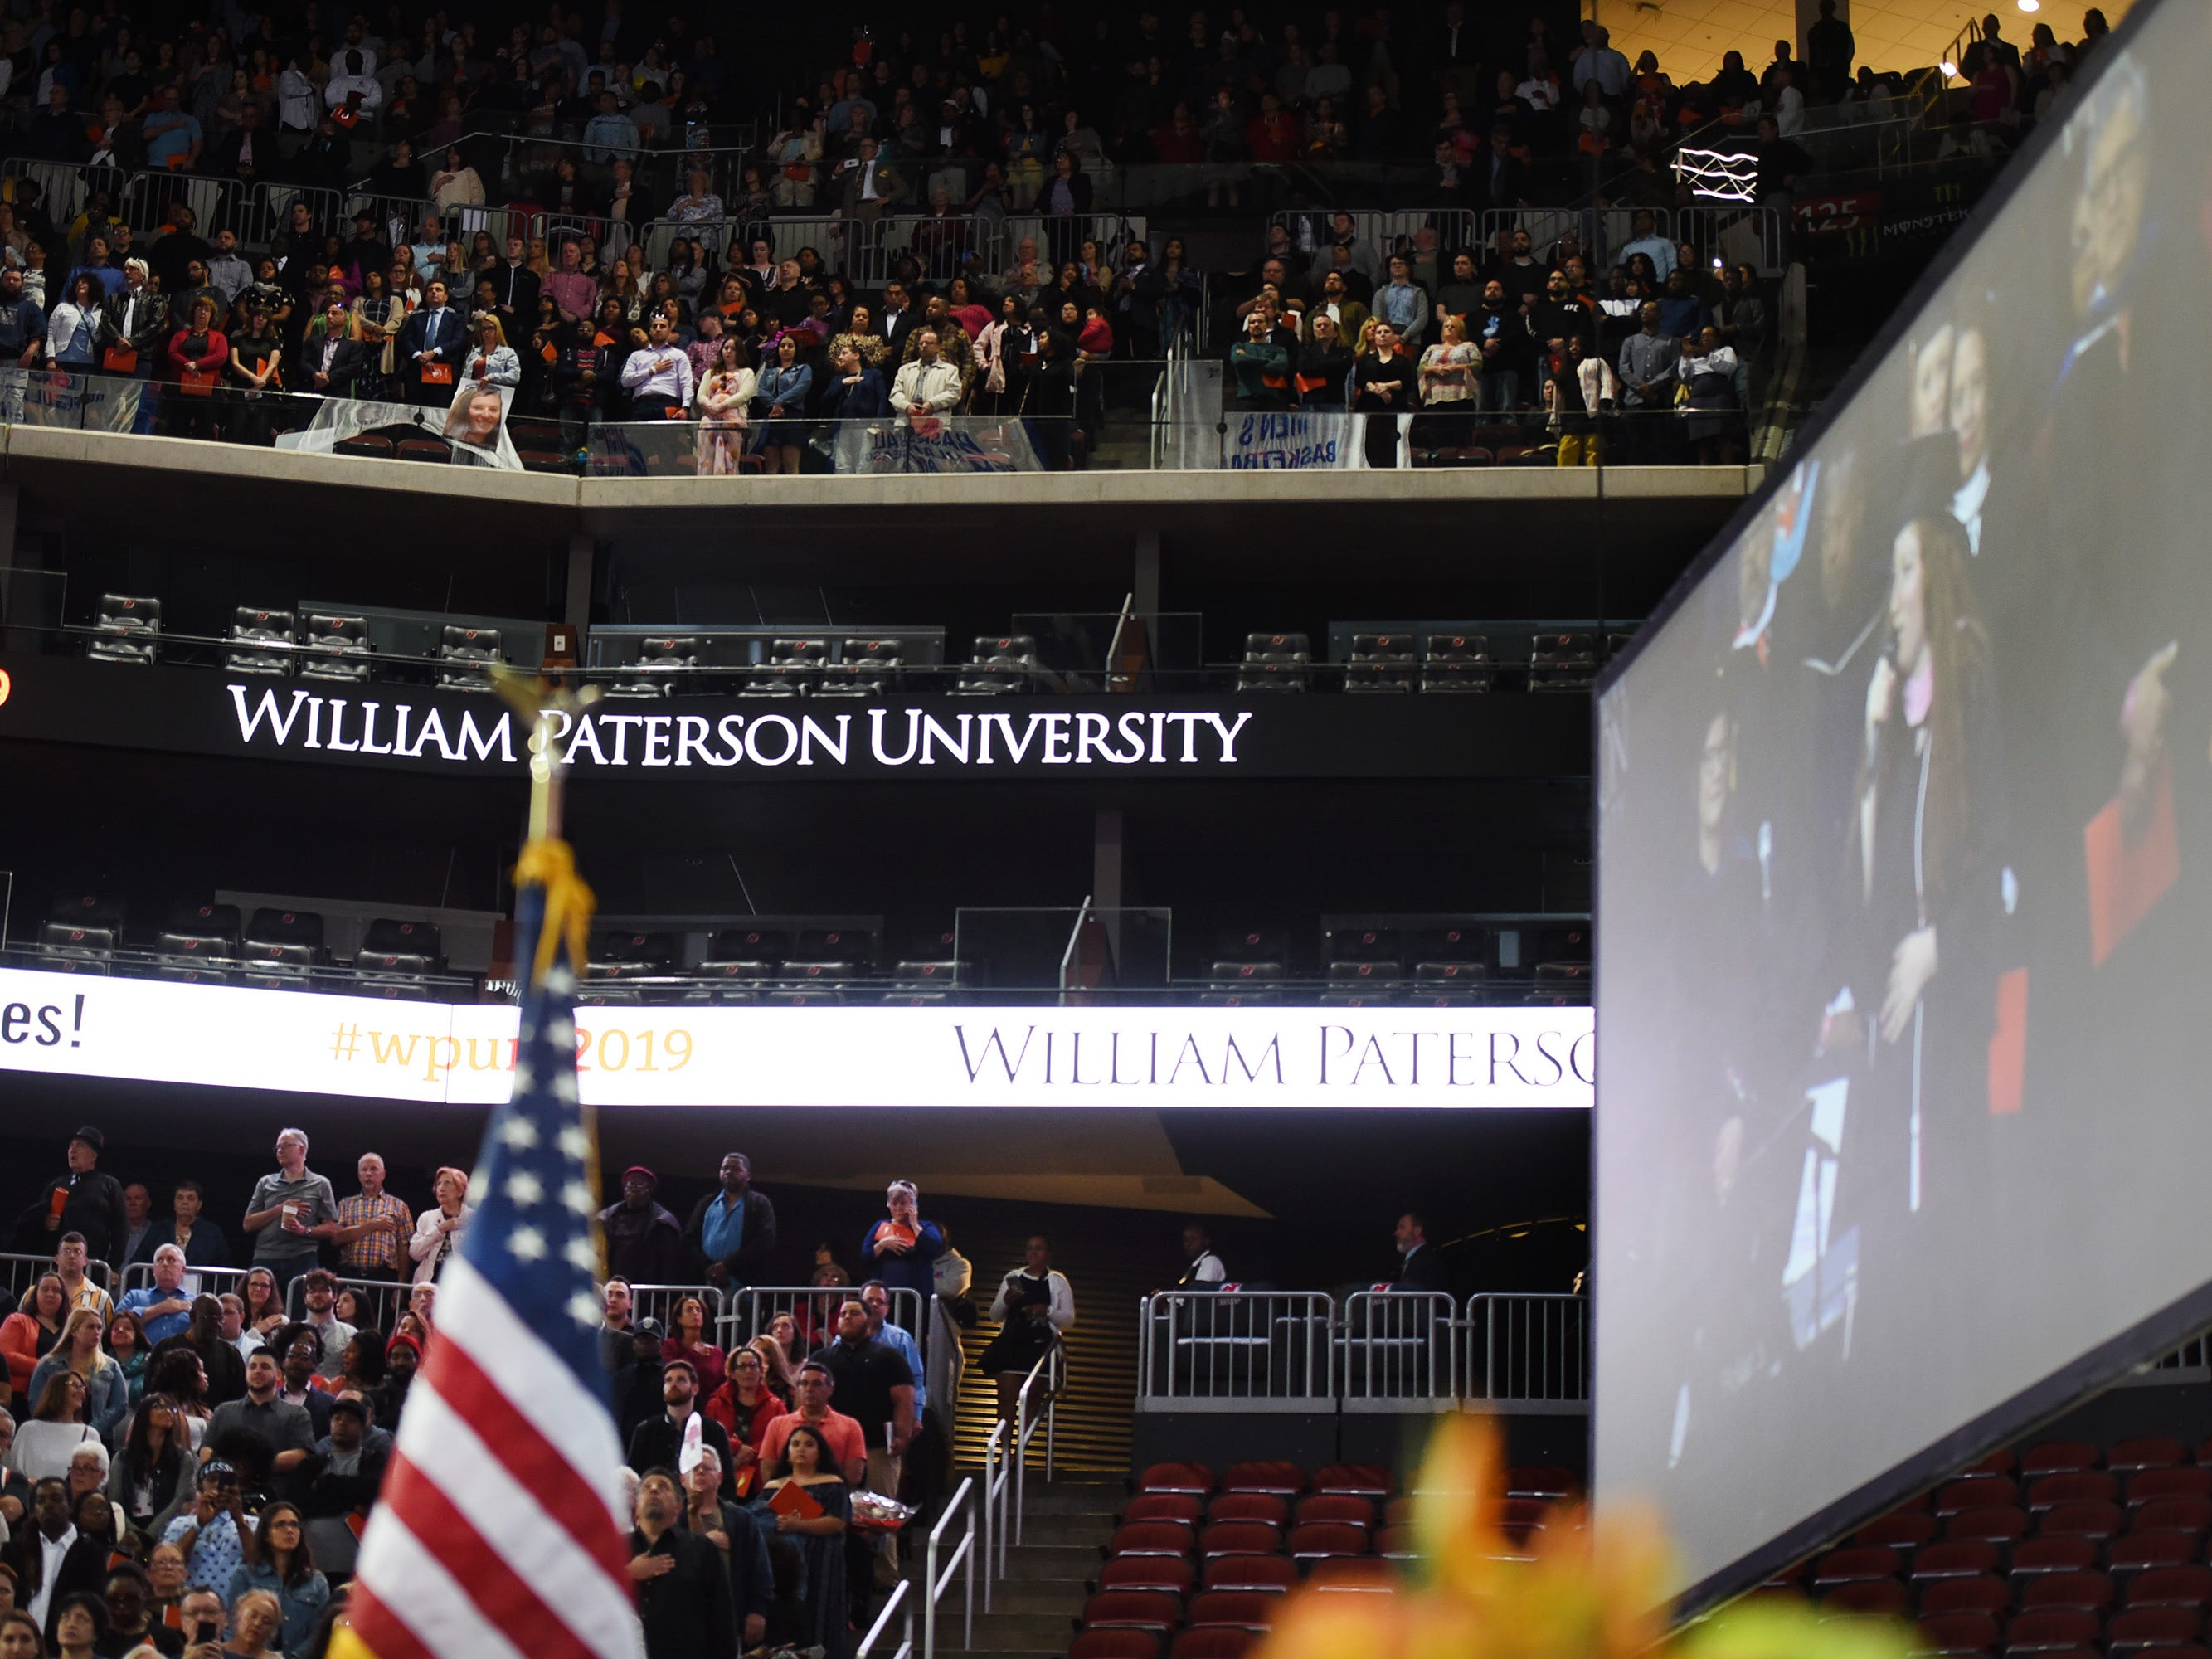 The National Anthem is sung at the beginning of the William Paterson University 2019 Commencement at the Prudential Center in Newark on 05/15/19.